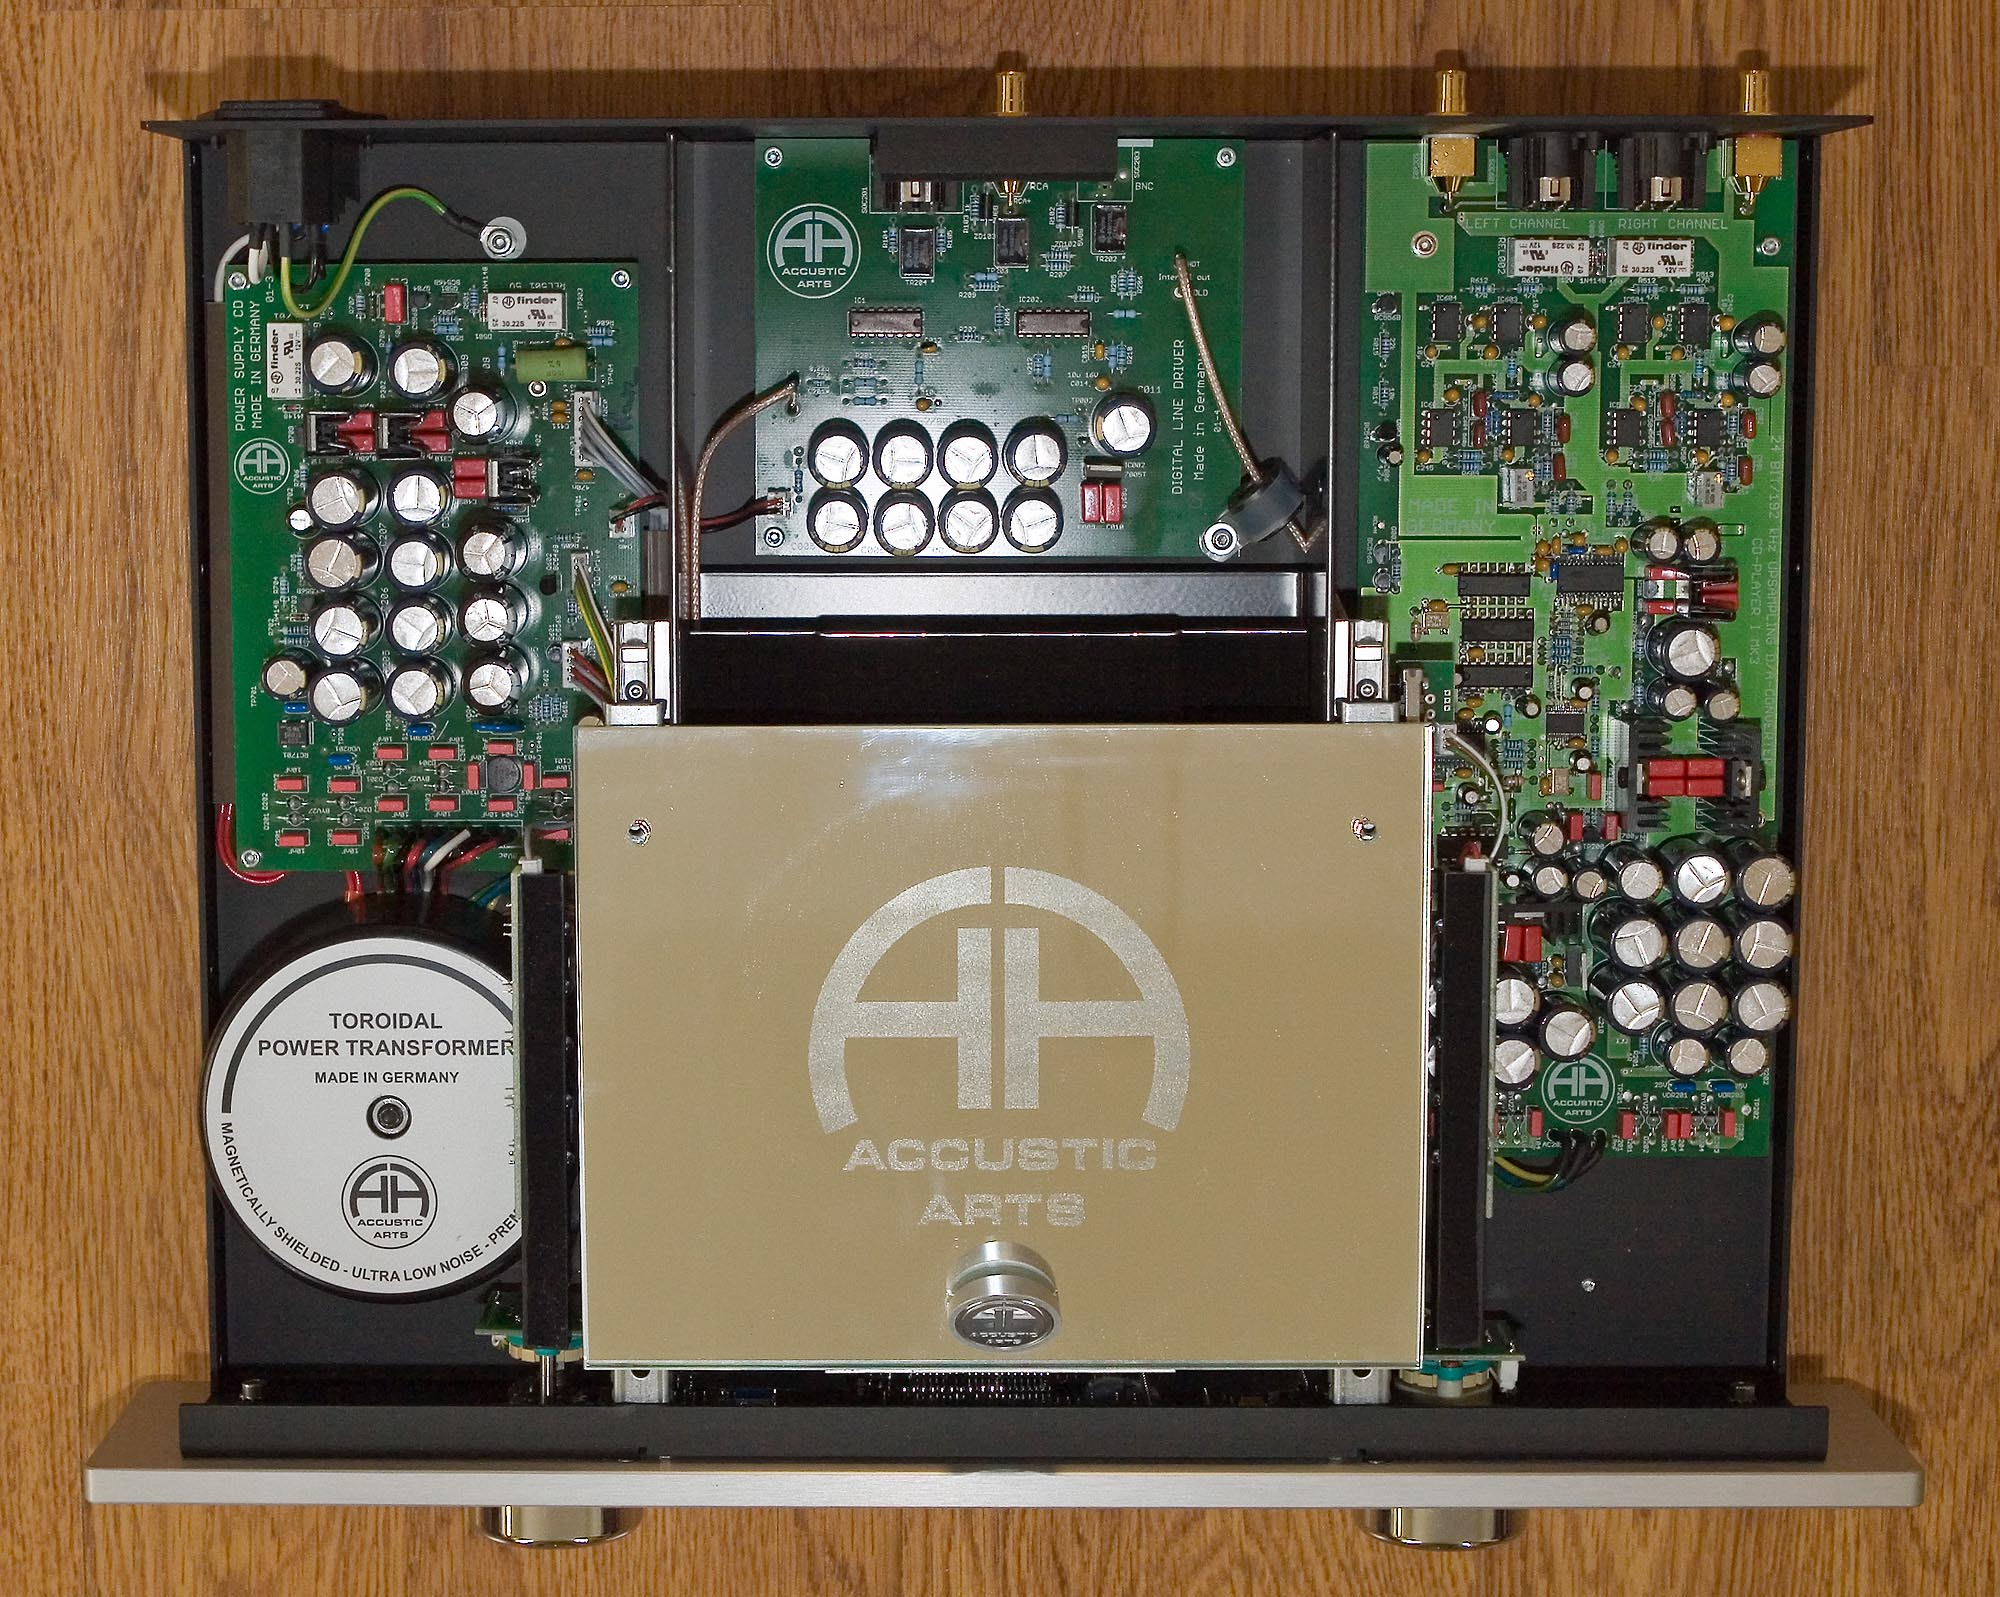 How To Drive Manual >> 6moons audio reviews: Accustic Arts CD Player I MkIII